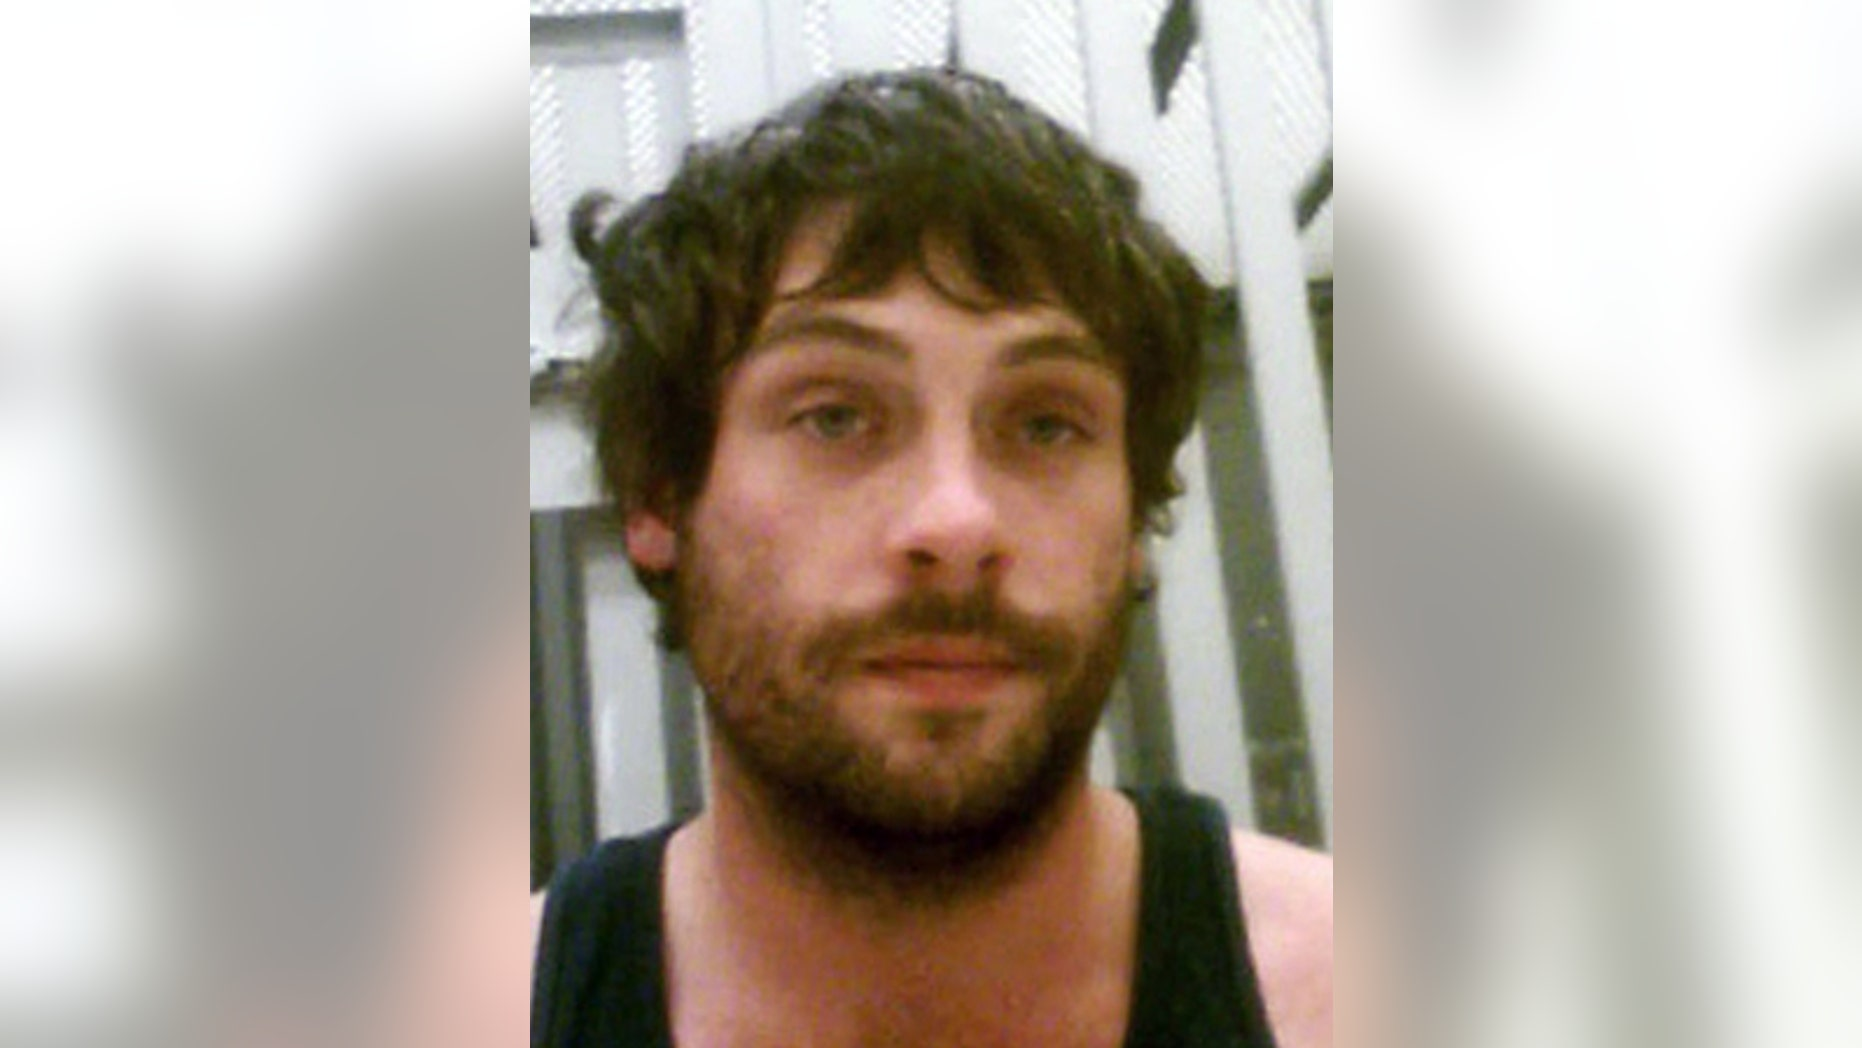 undated FILE photo provided by the Ottawa County, OK Sheriffs Department shows Gregory Arthur Weiler II.